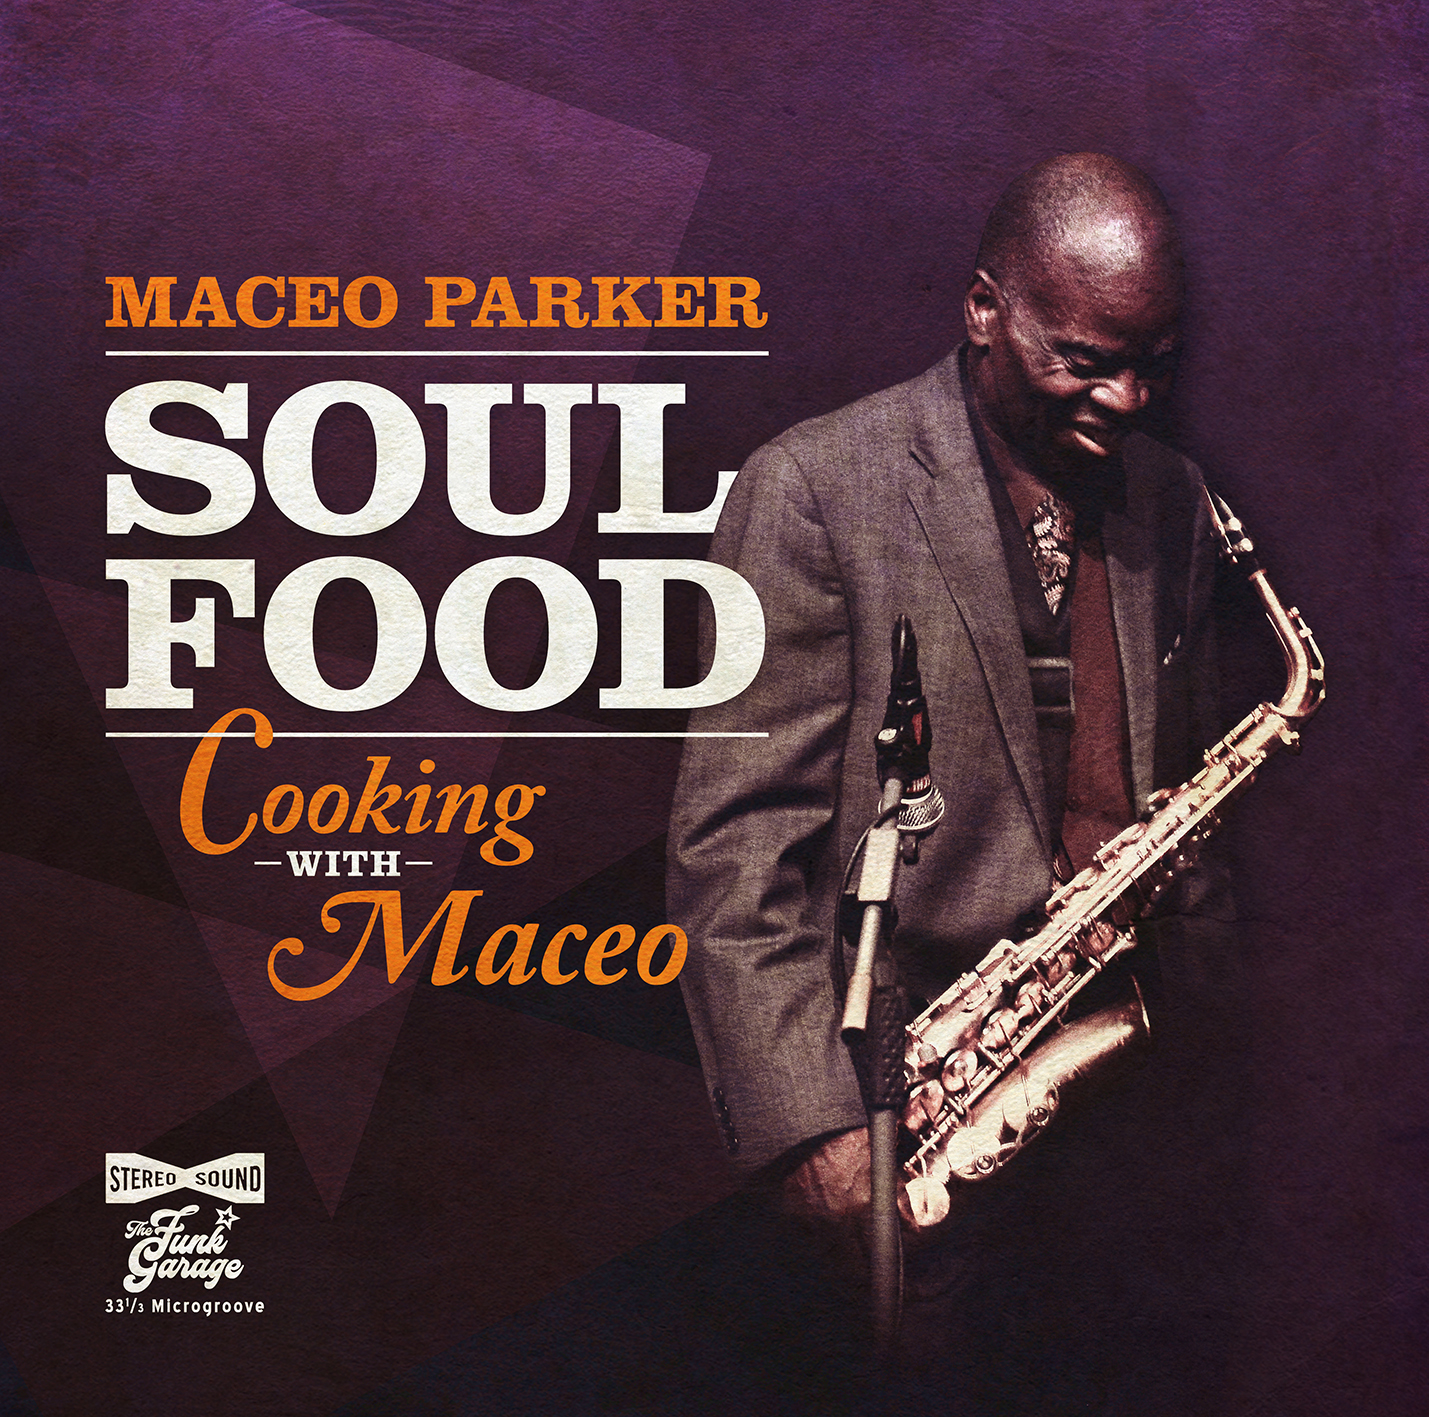 <h5>Maceo Parker <br>Soul Food - Cooking With Maceo</h5>